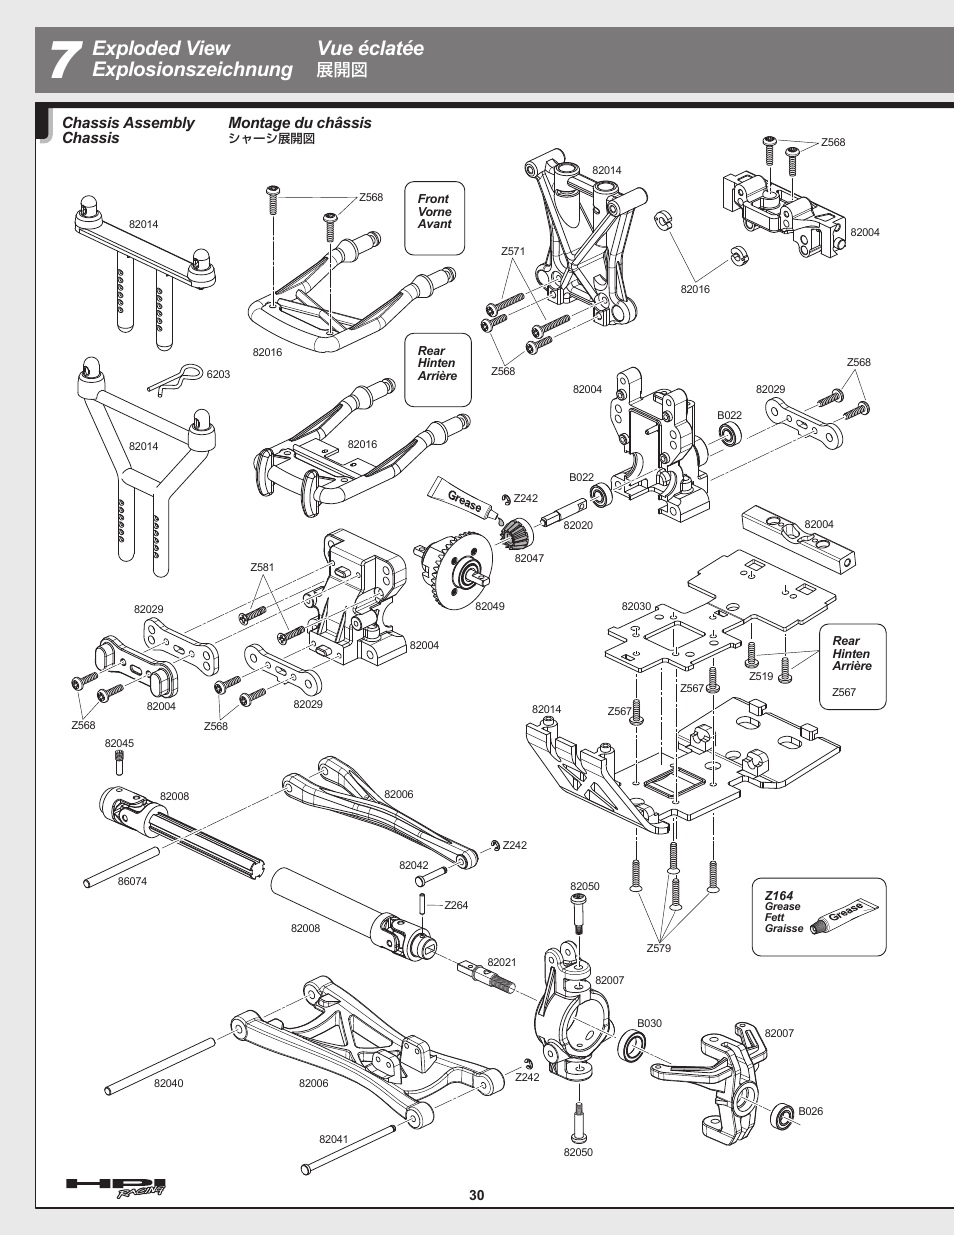 exploded view explosionszeichnung vue �clat�e, montage du ch�ssis, chassis  assembly chassis – hpi racing e-savage user manual